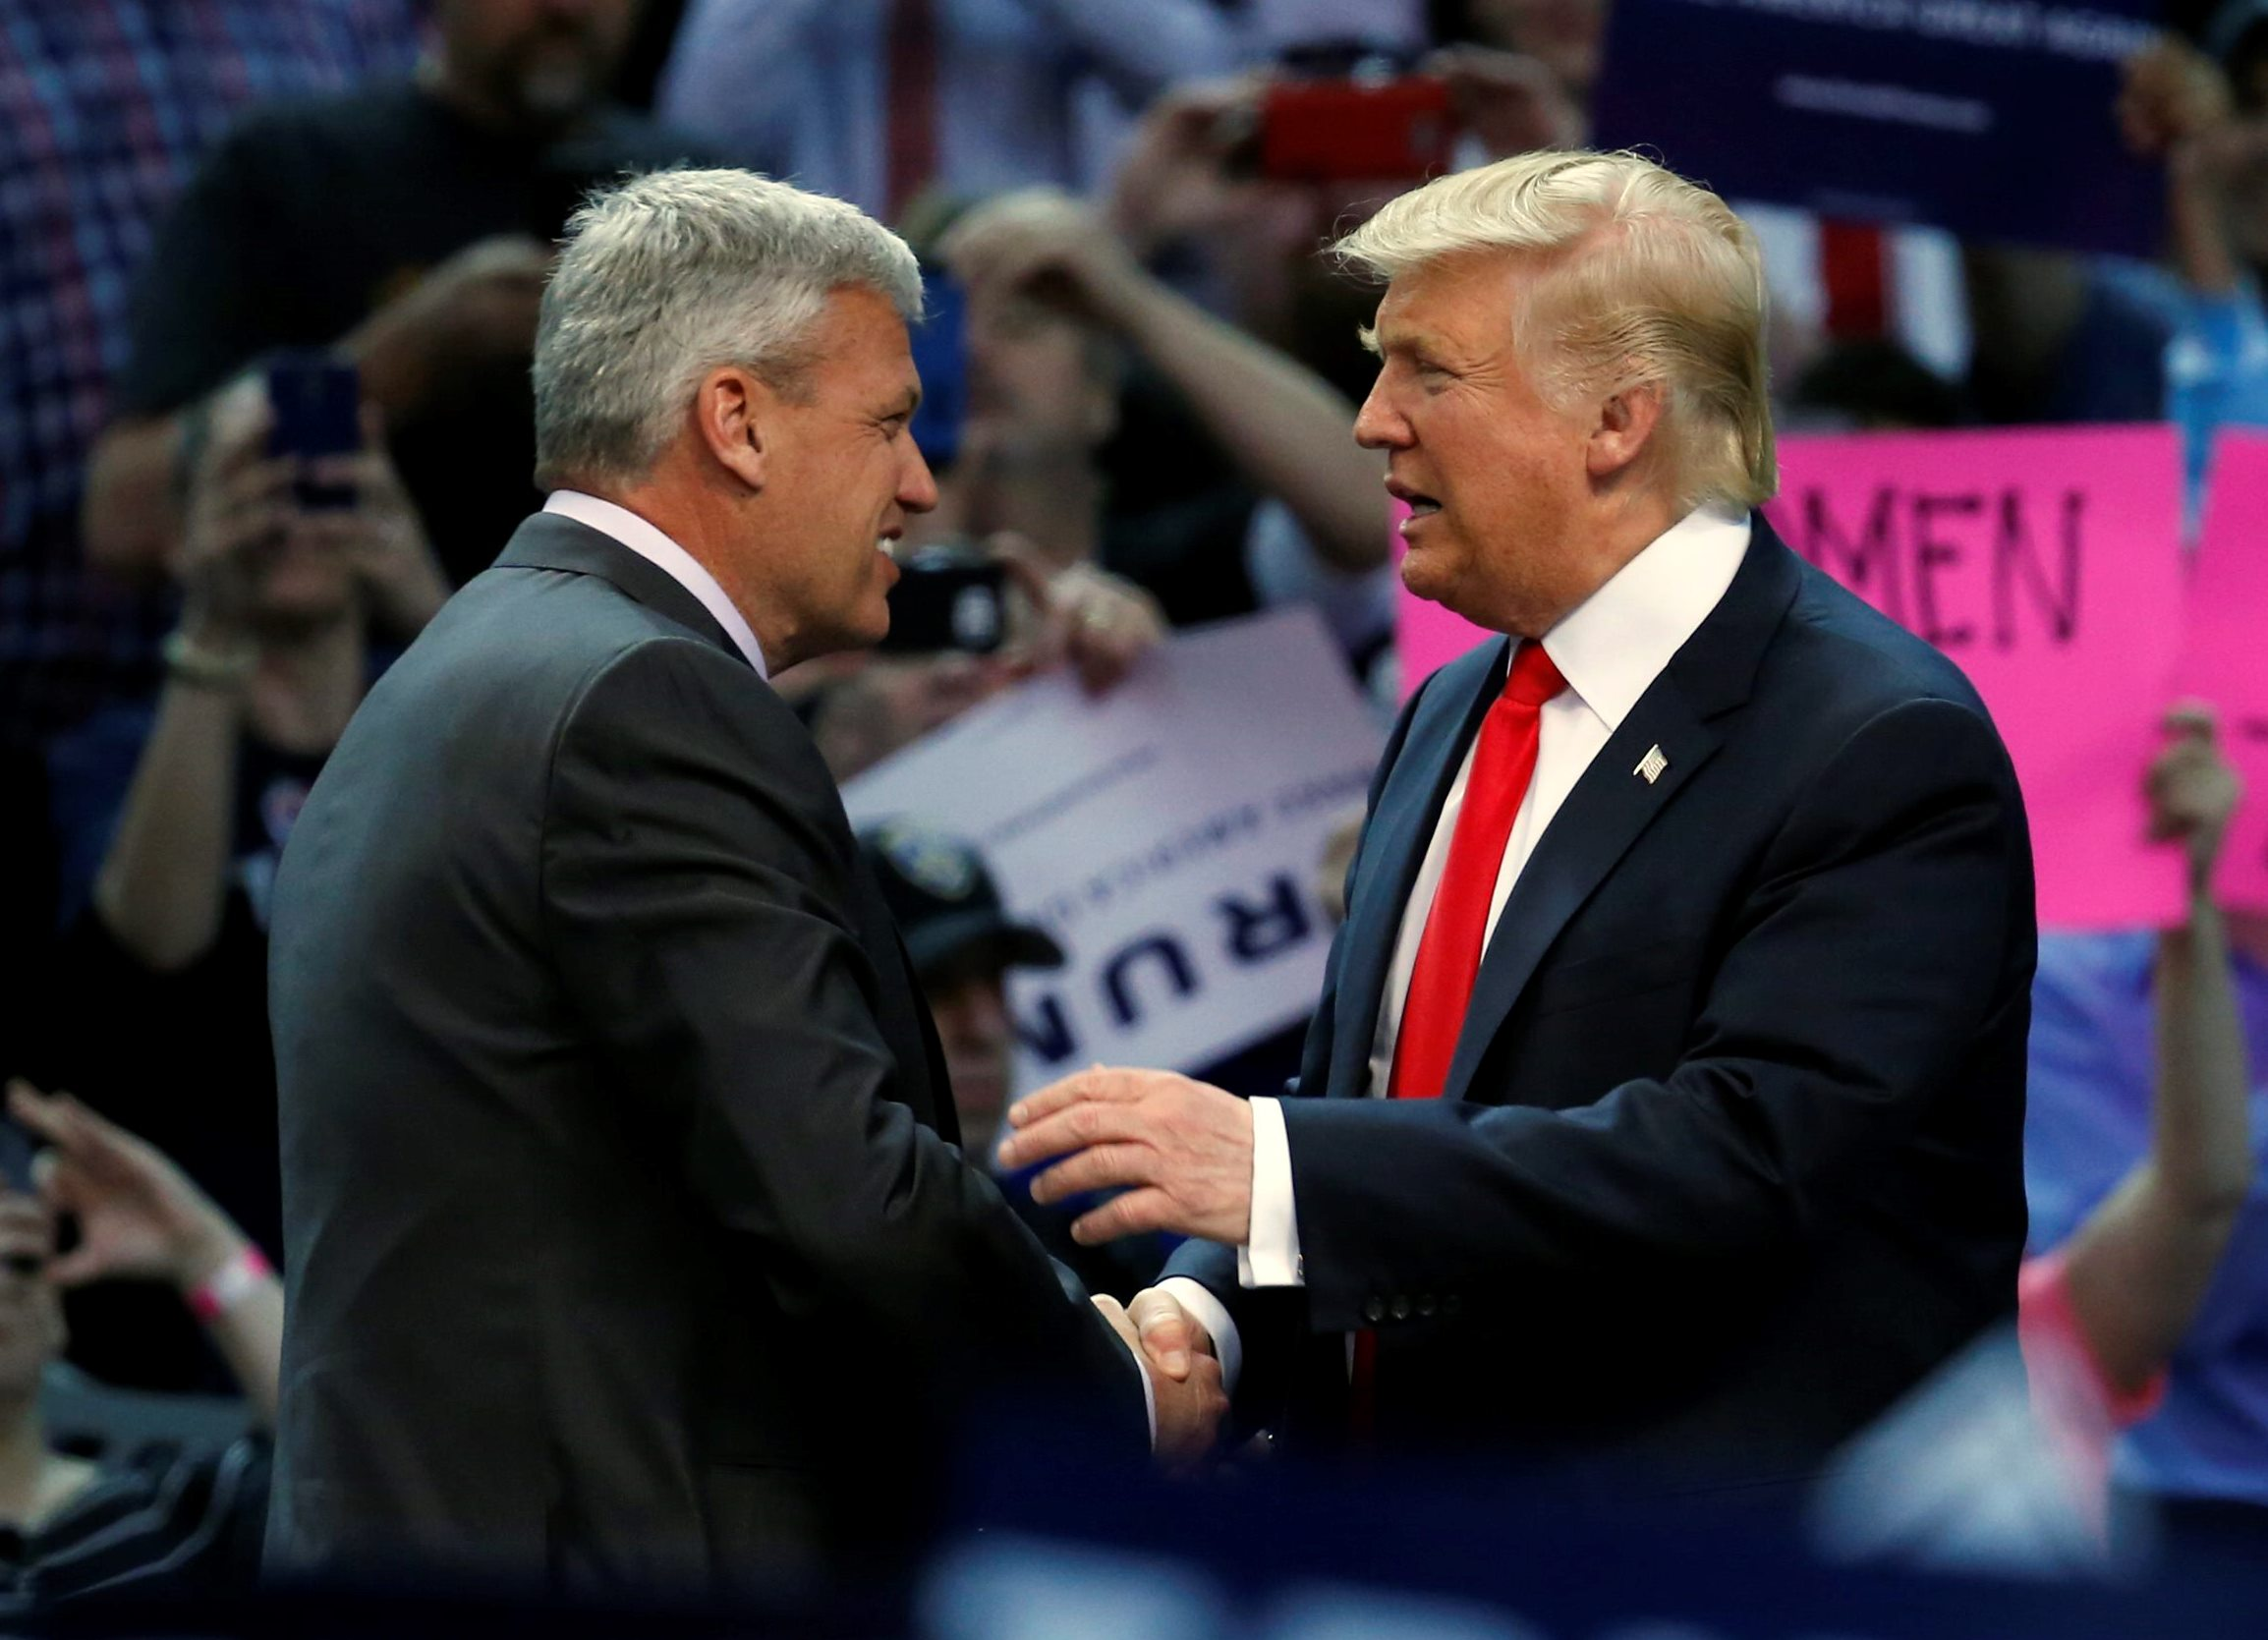 Buffalo Bills coach Rex Ryan shakes hands with Donald Trump after introducing him at a campaign rally in KeyBank Center last April. Would Ryan be the Bills' coach now if Trump had purchased the team in 2014? (Harry Scull Jr./Buffalo News)